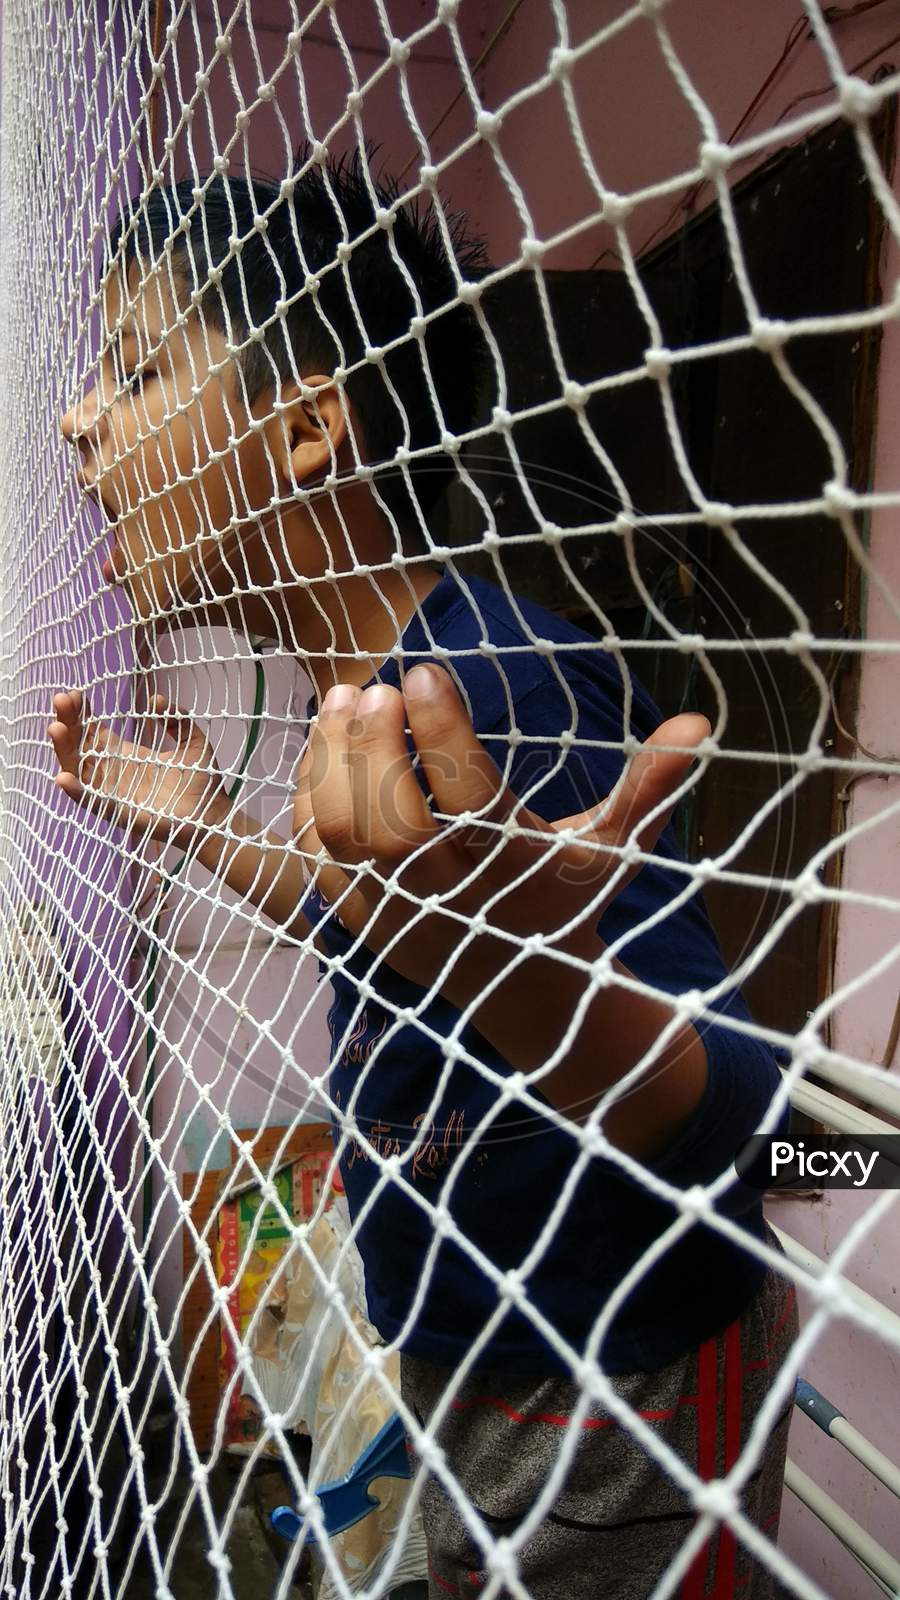 Child or Kid in cage or Home arrest concept